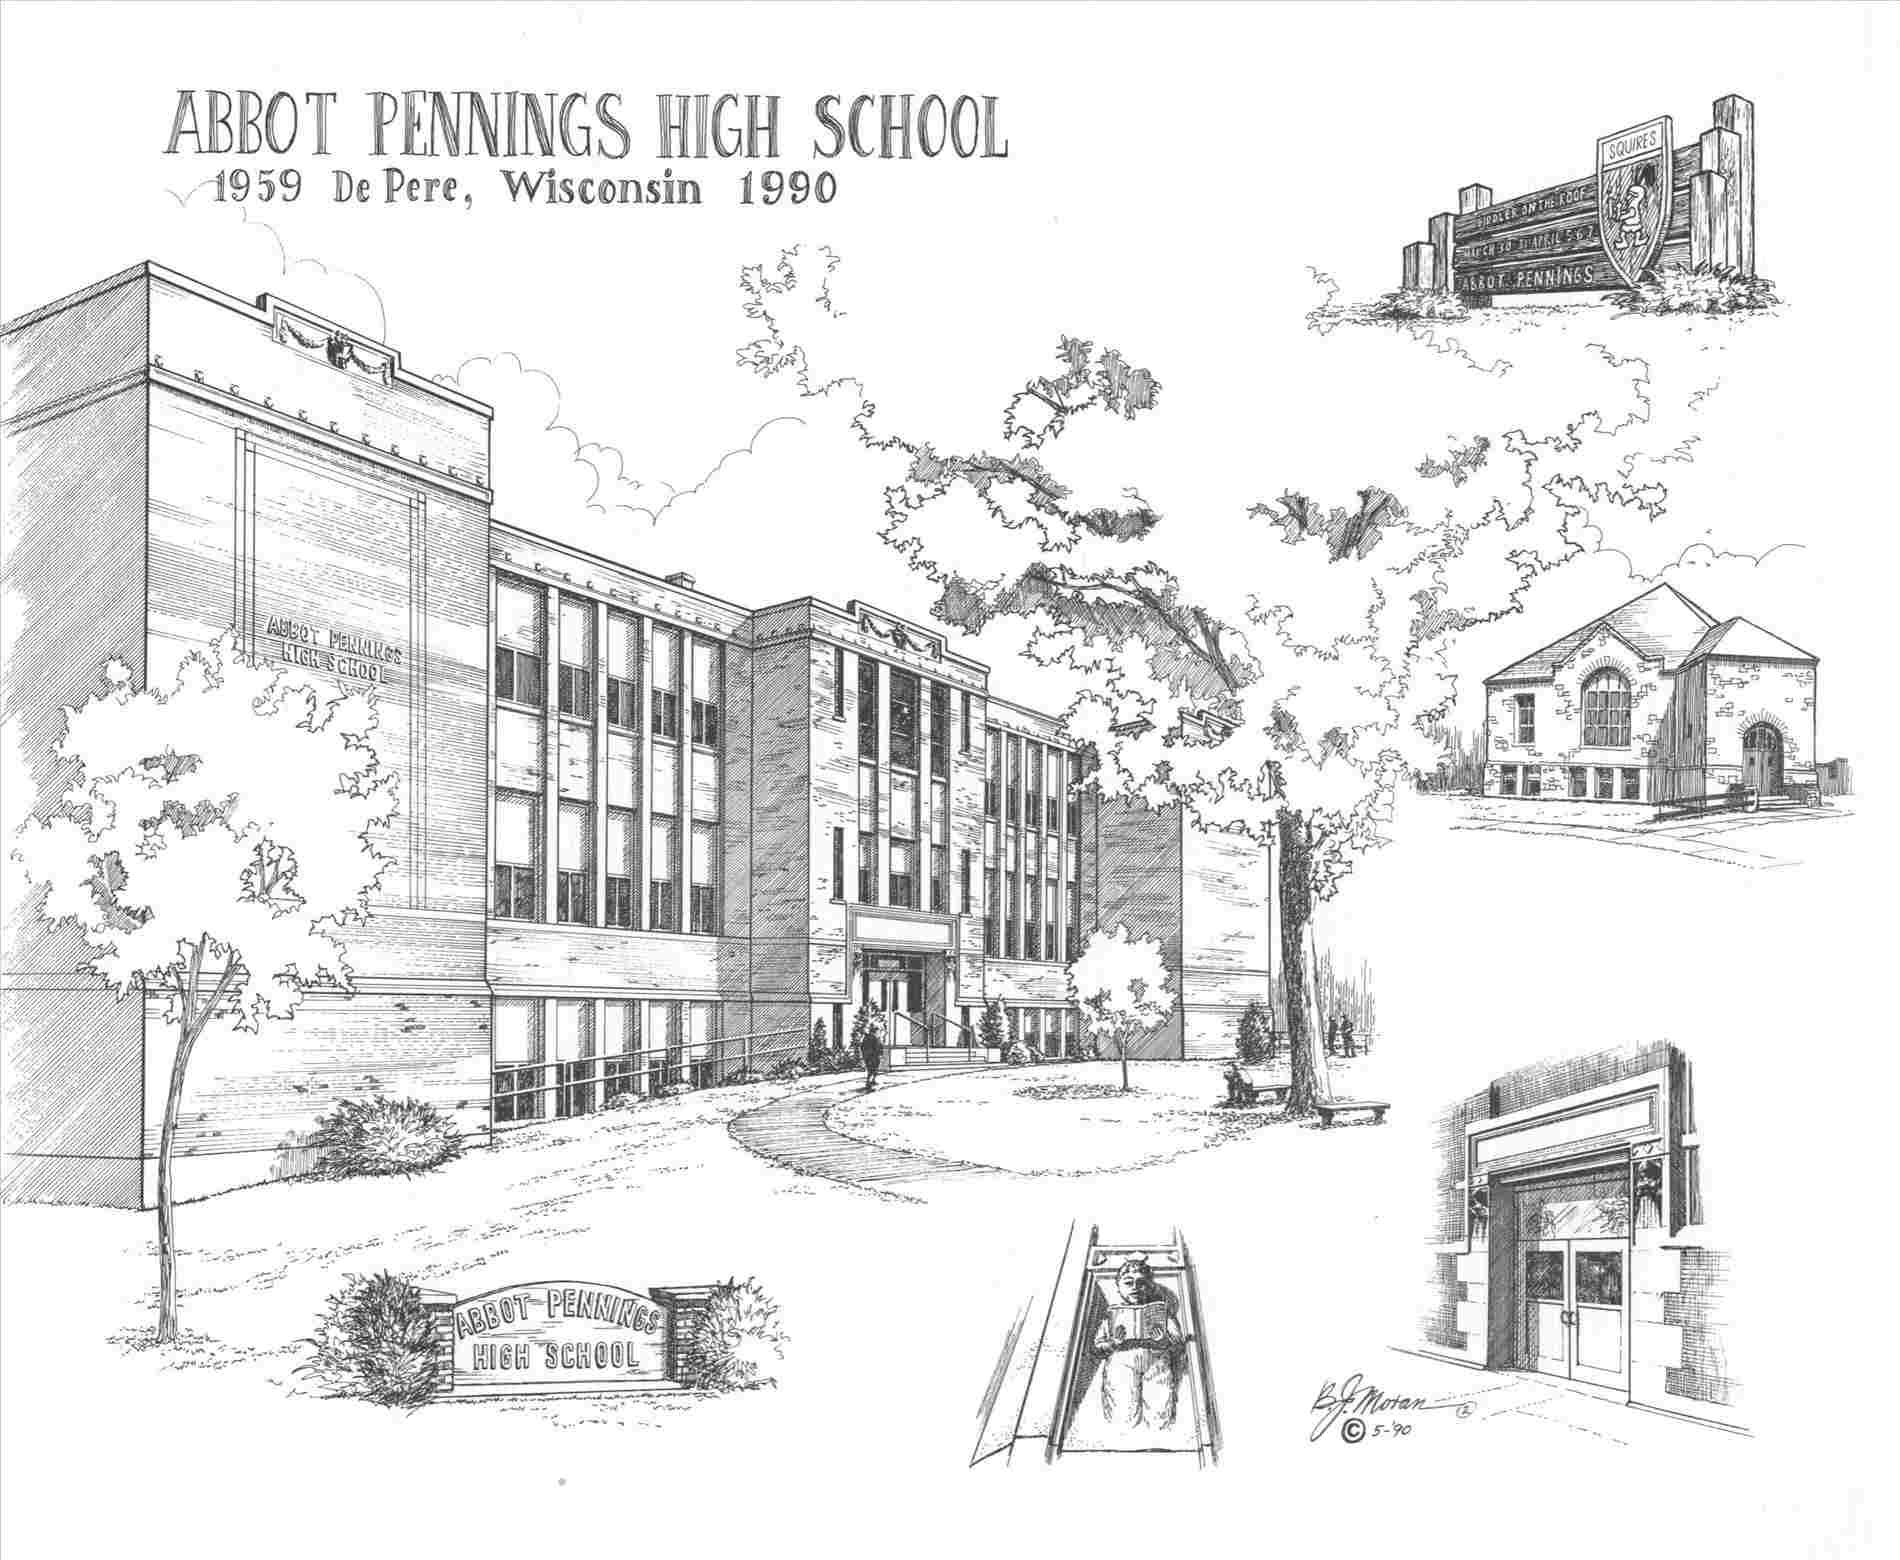 High School Building Drawing At Paintingvalley